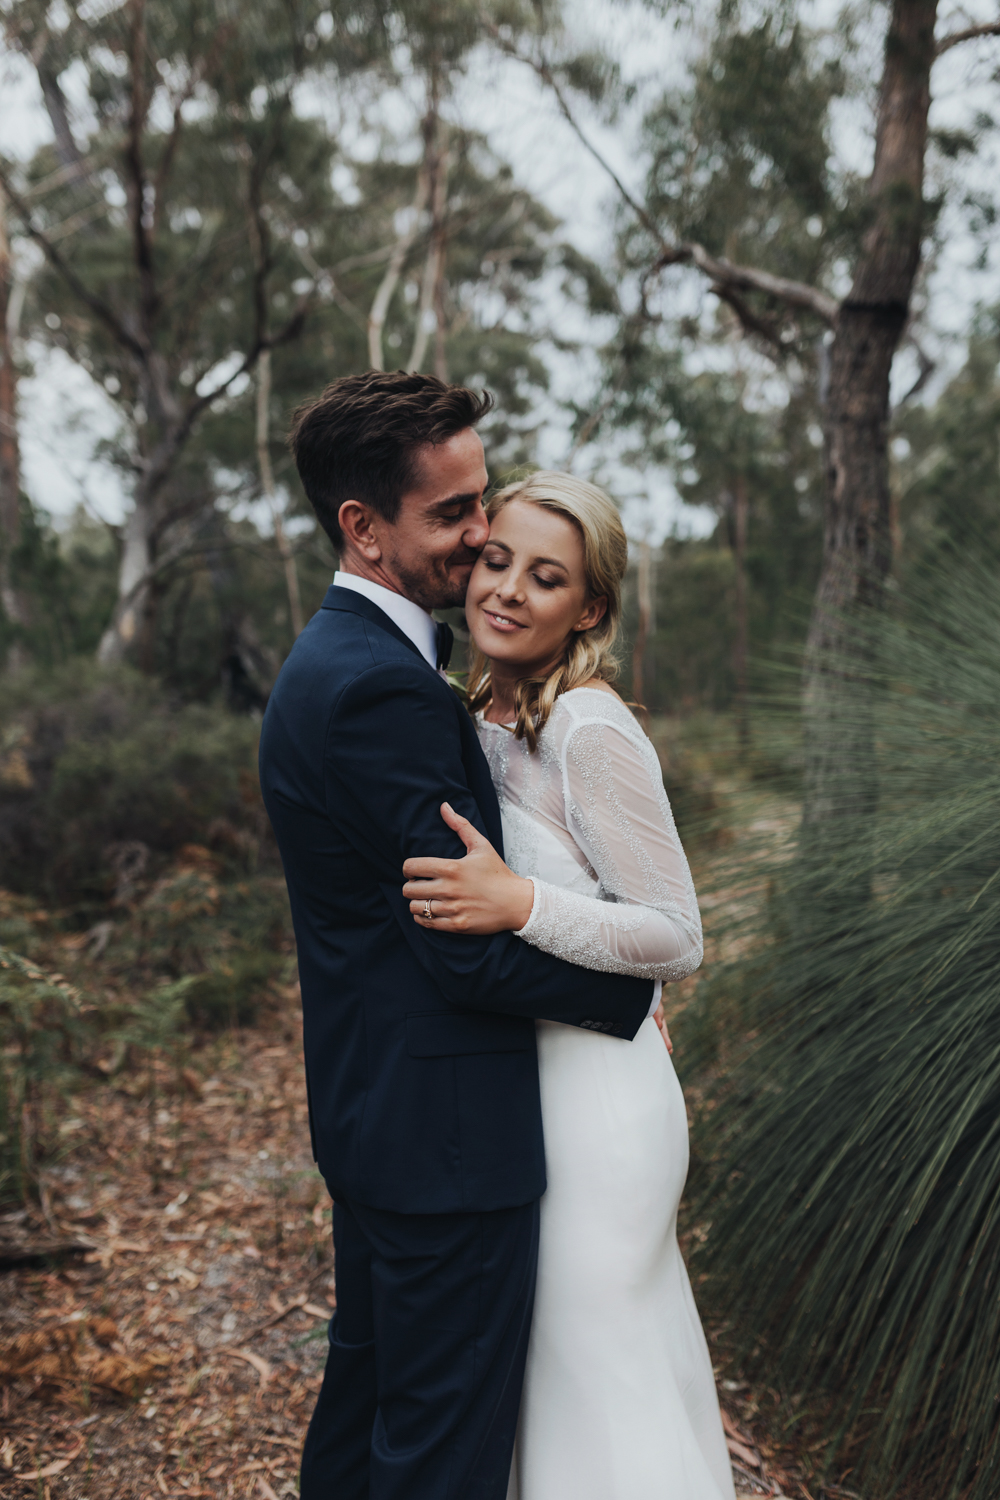 Bride and groom embrace after wedding at Bay of Fires Bush retre